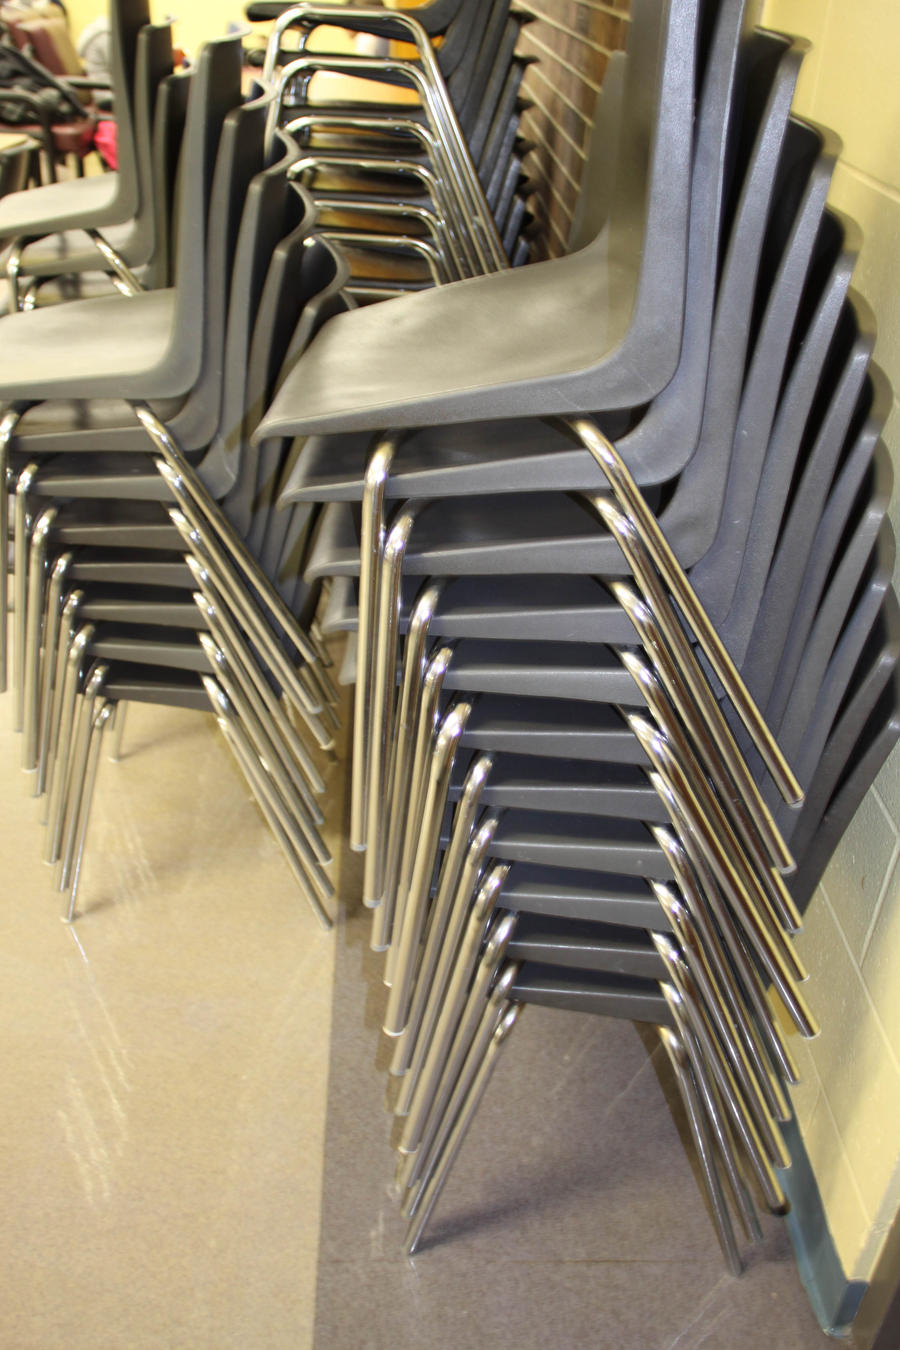 Repetition - Chairs by insanity-pillz